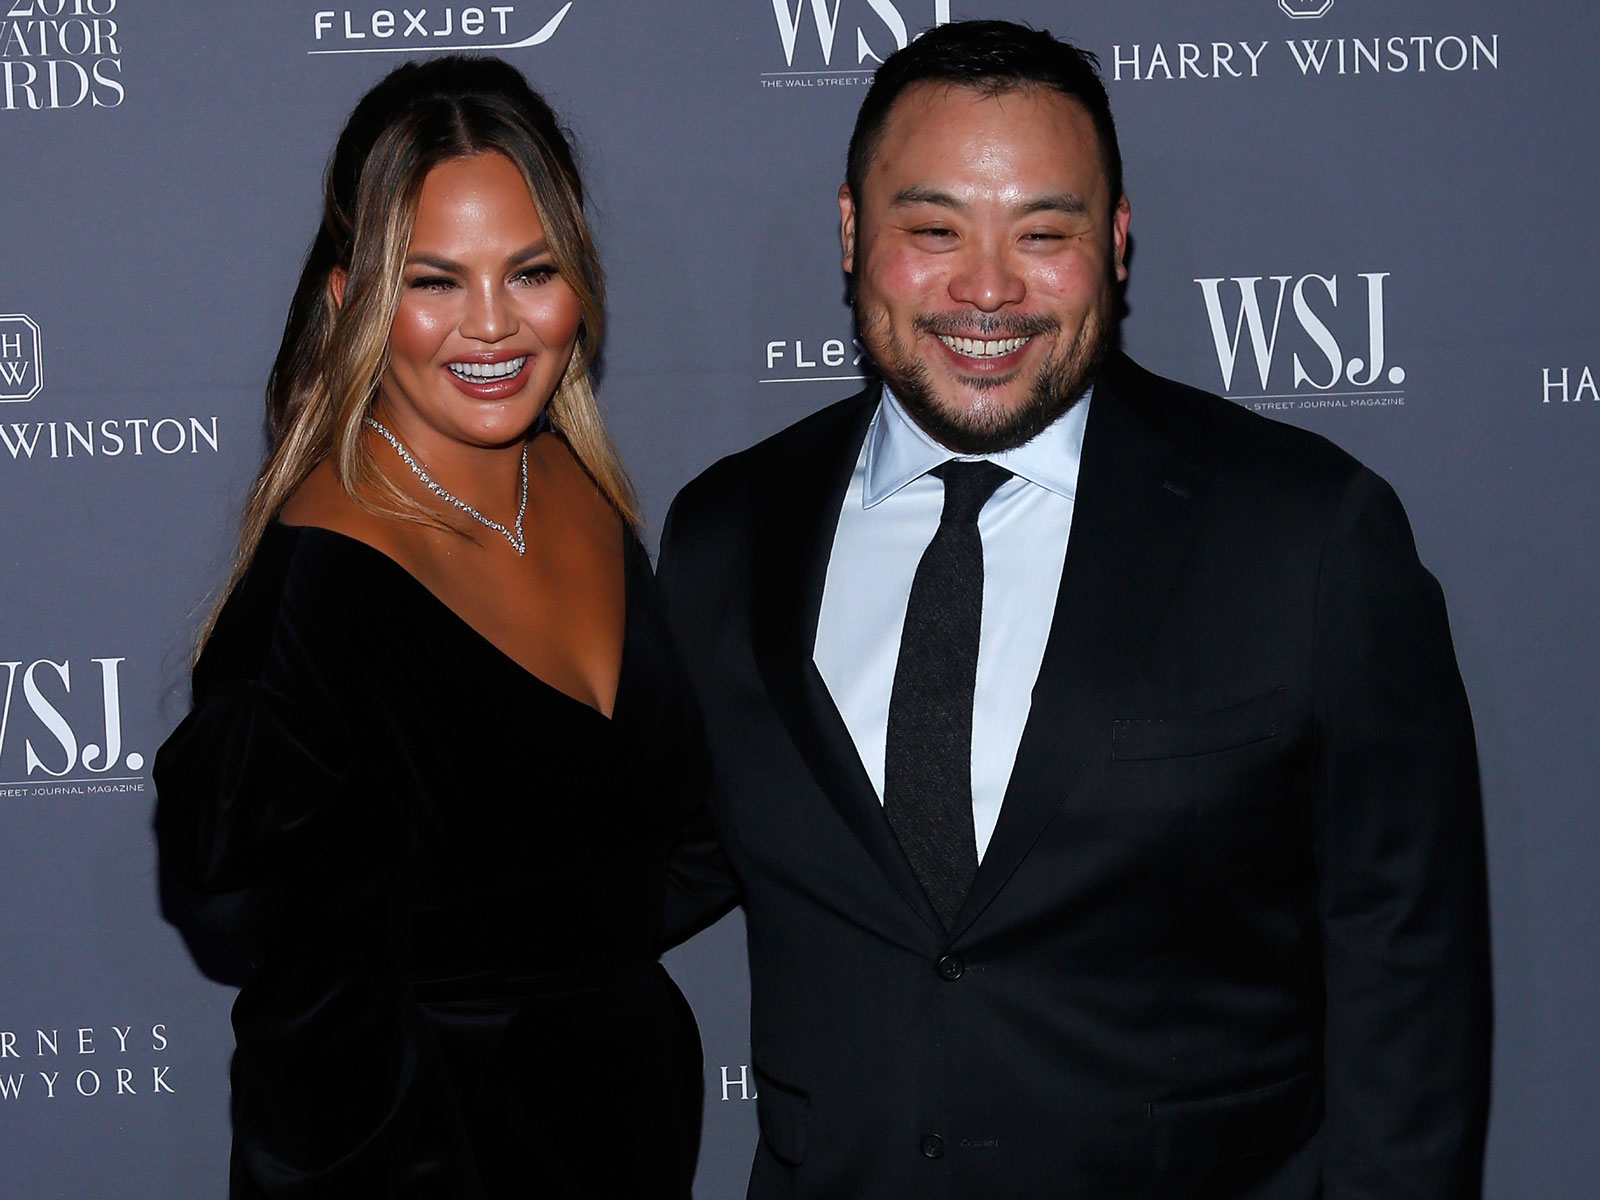 Chrissy Teigen and David Chang to Co-Host a Food-Themed Talk Show on Hulu